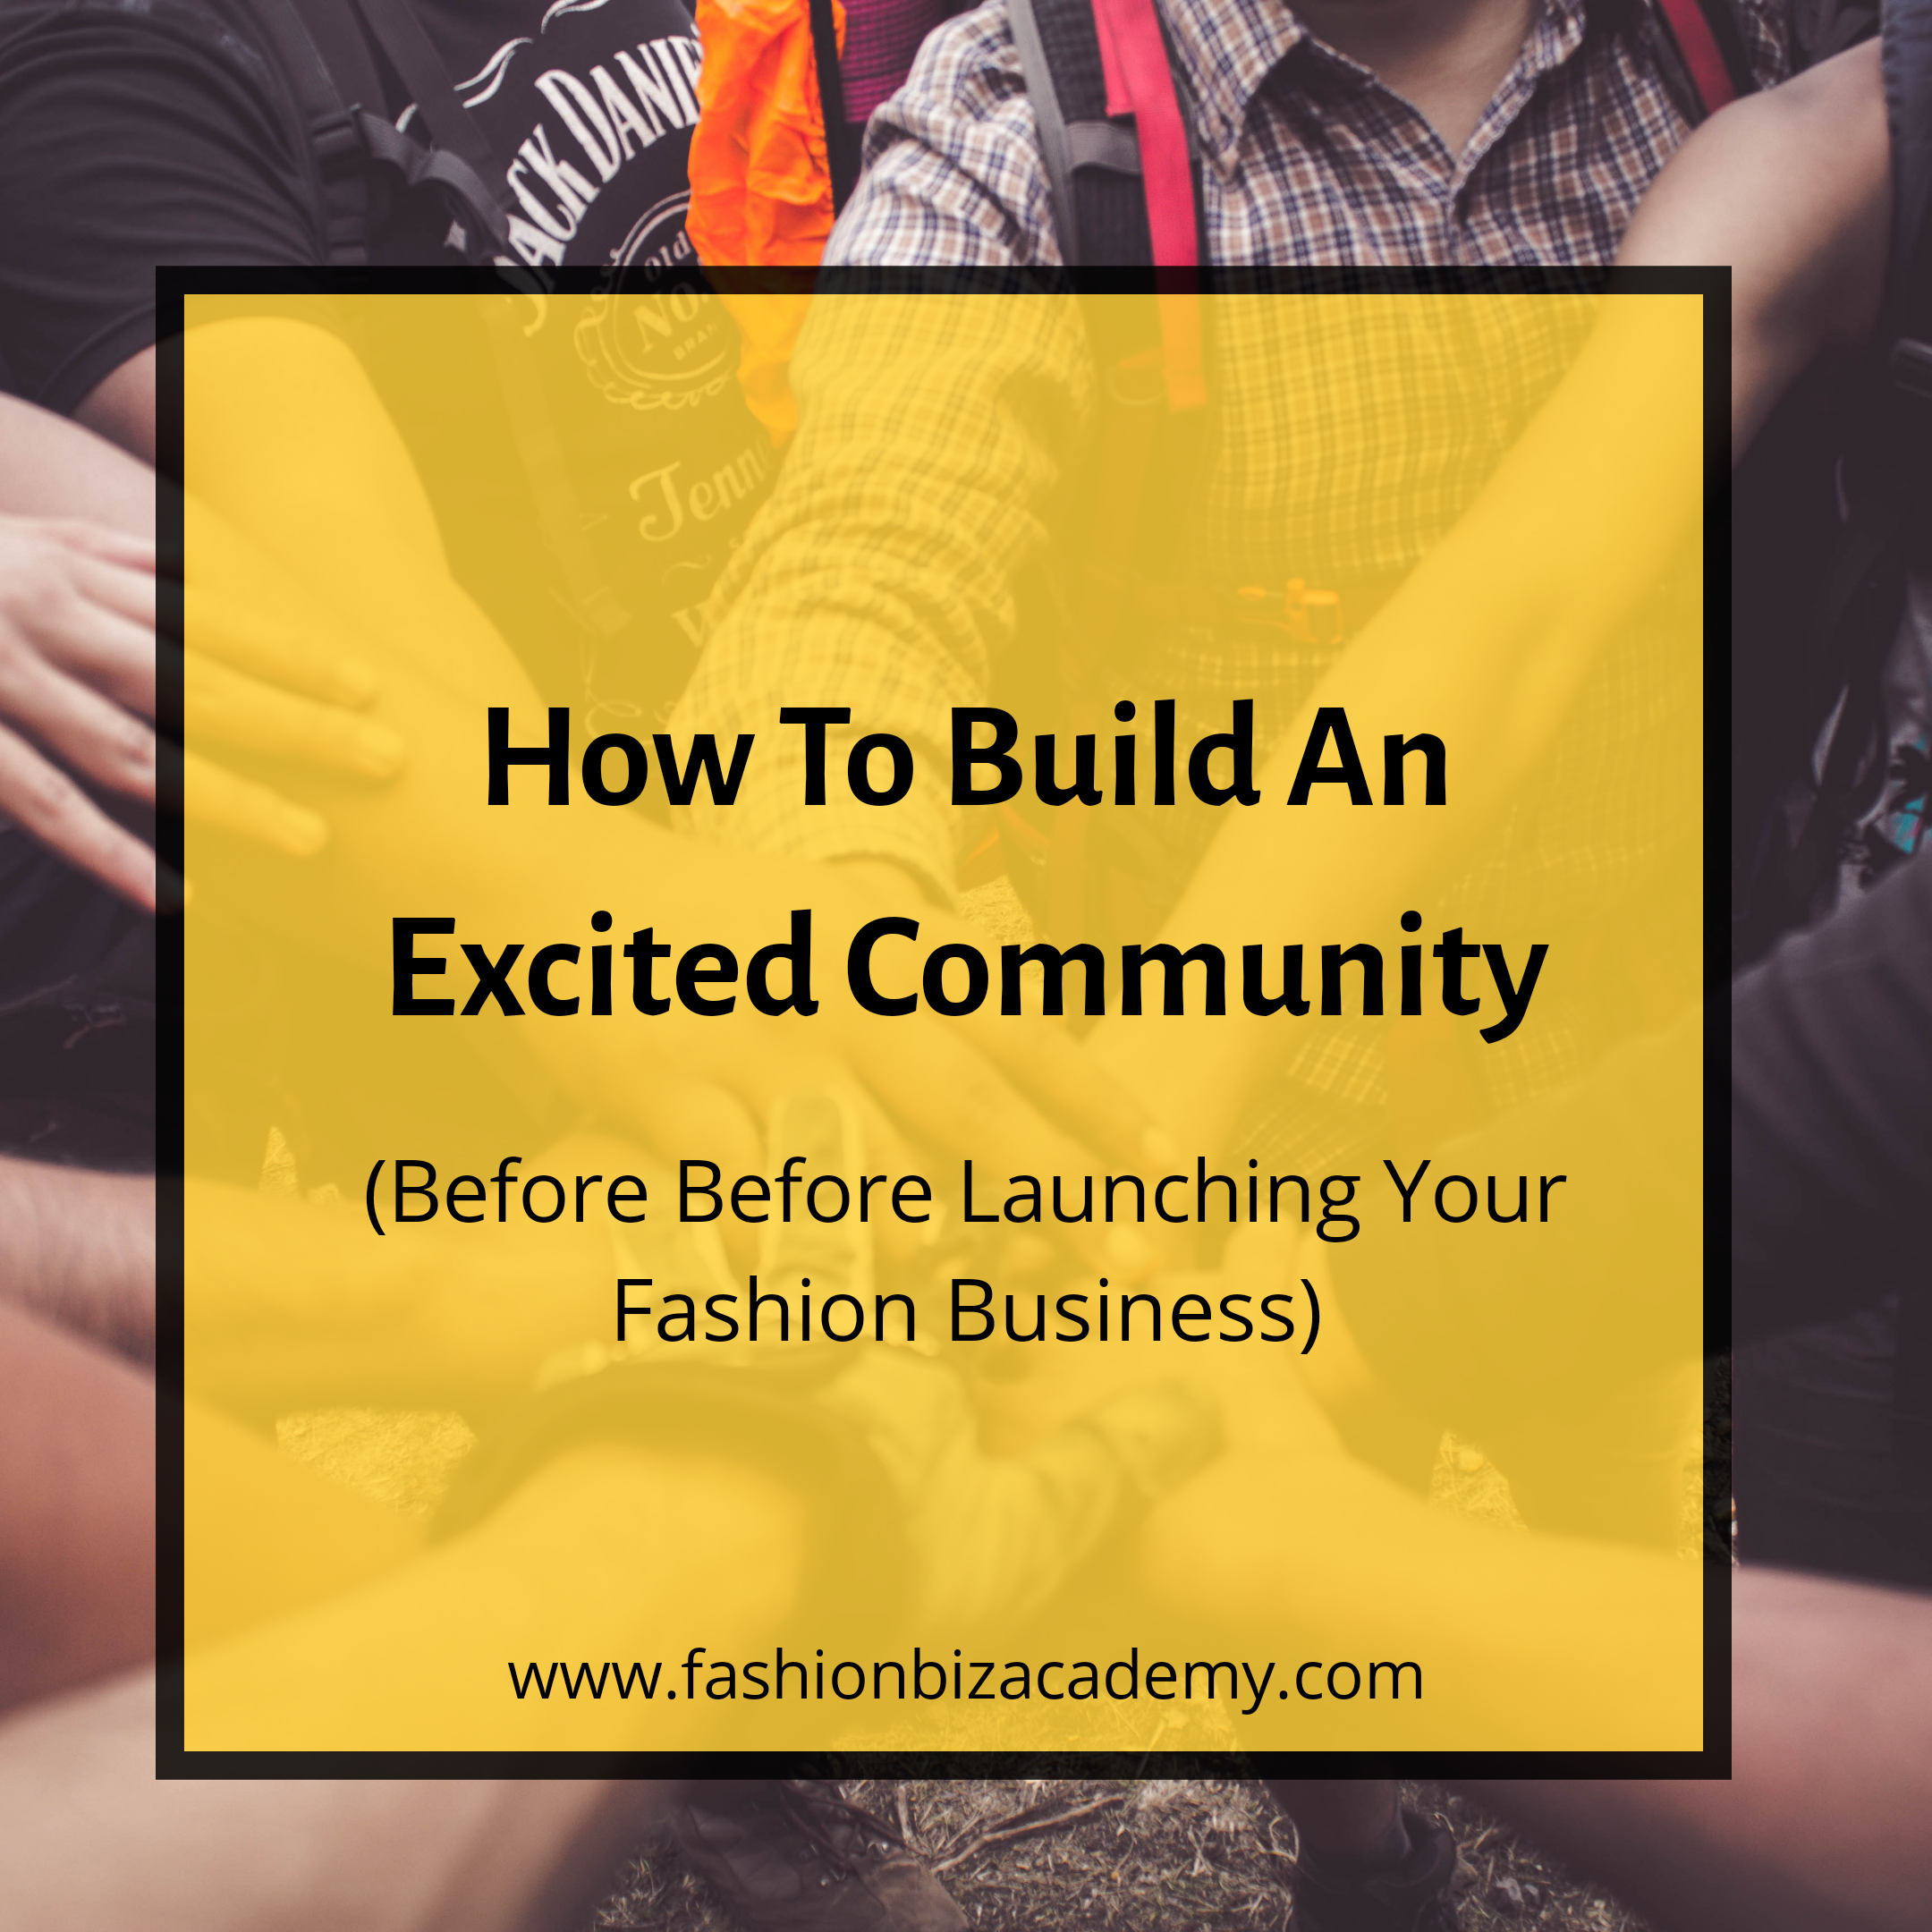 Build an excited community